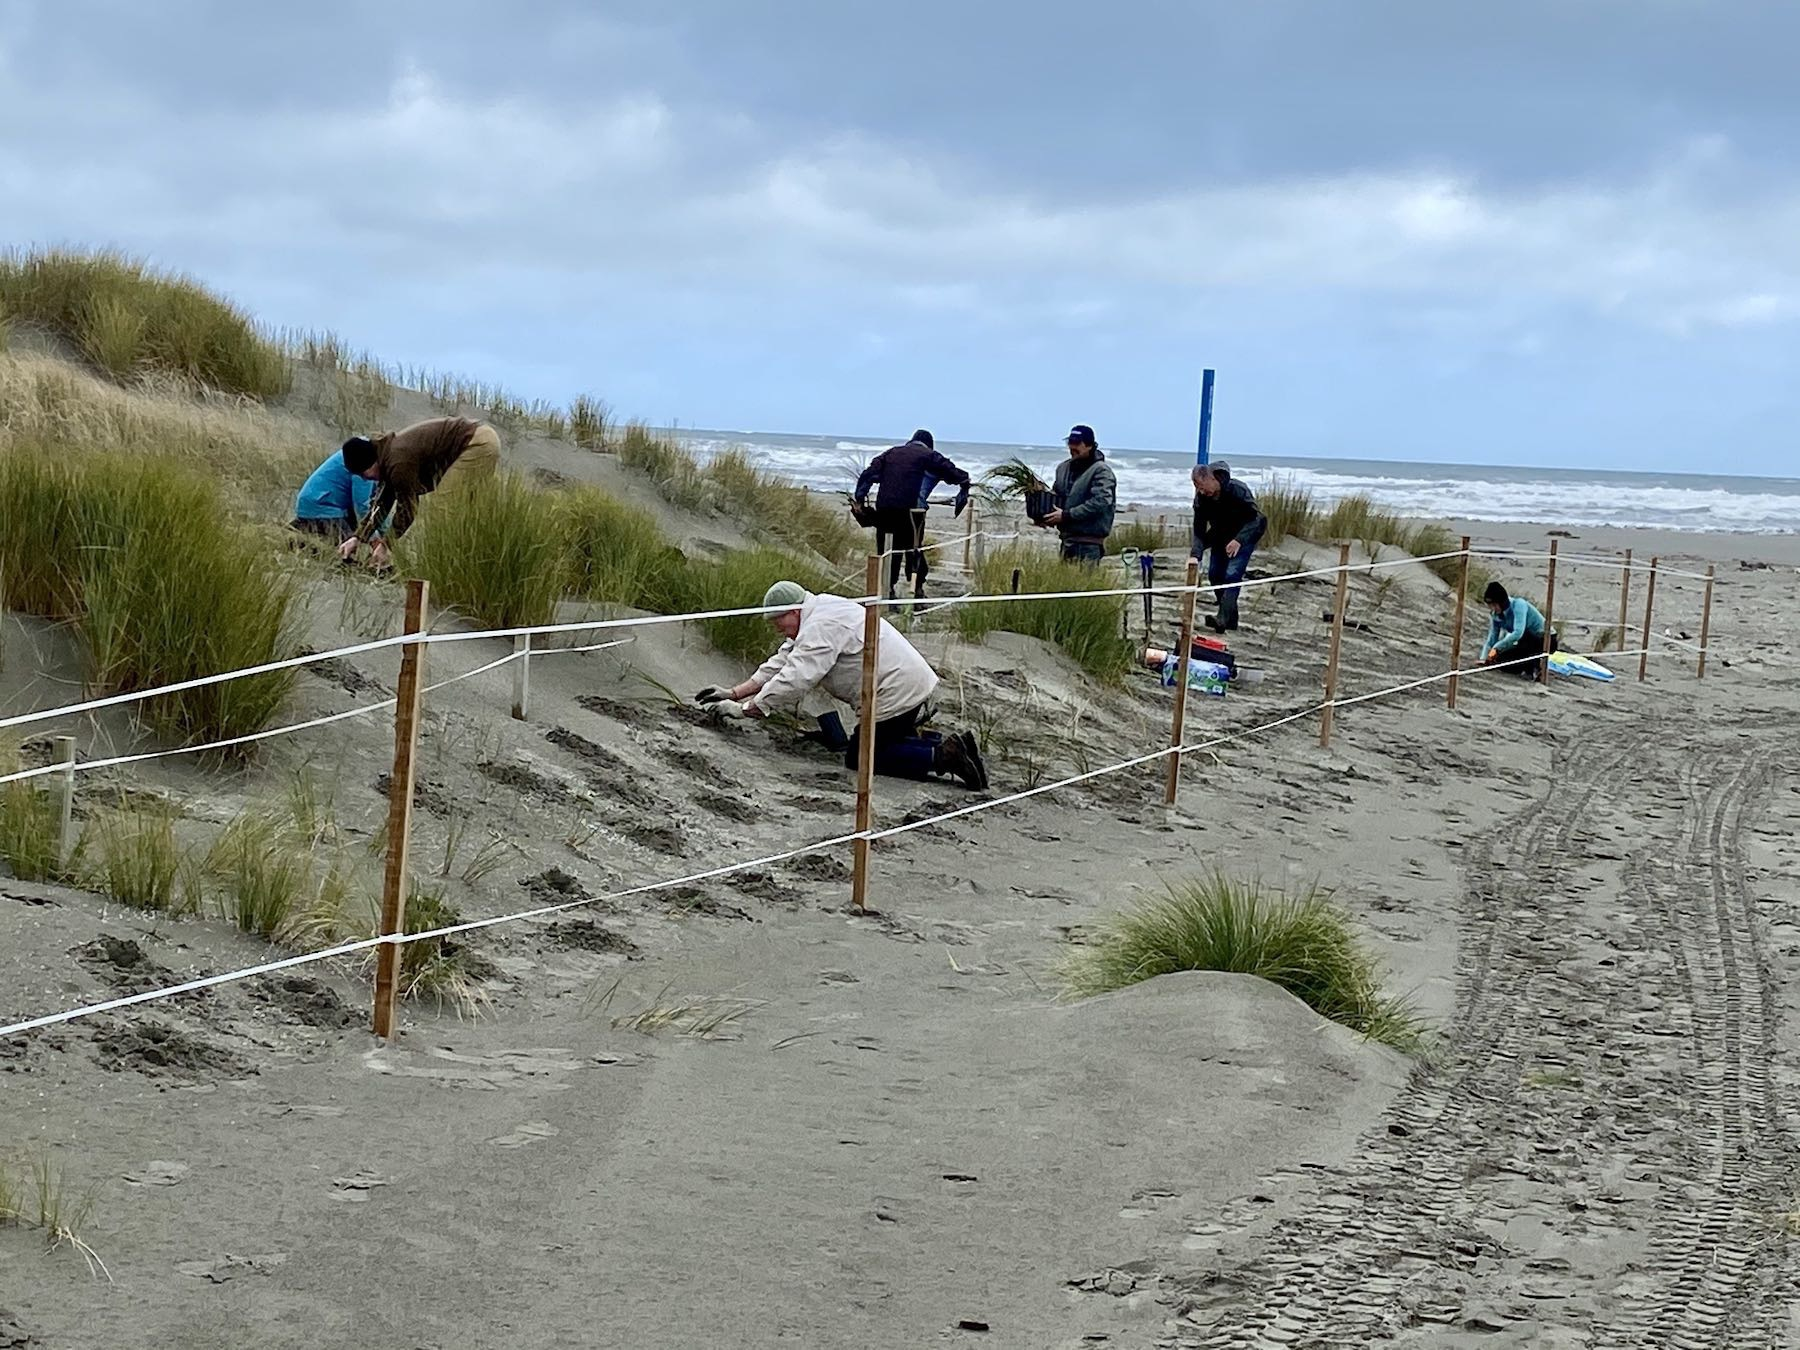 Seven people planting in the dunes.